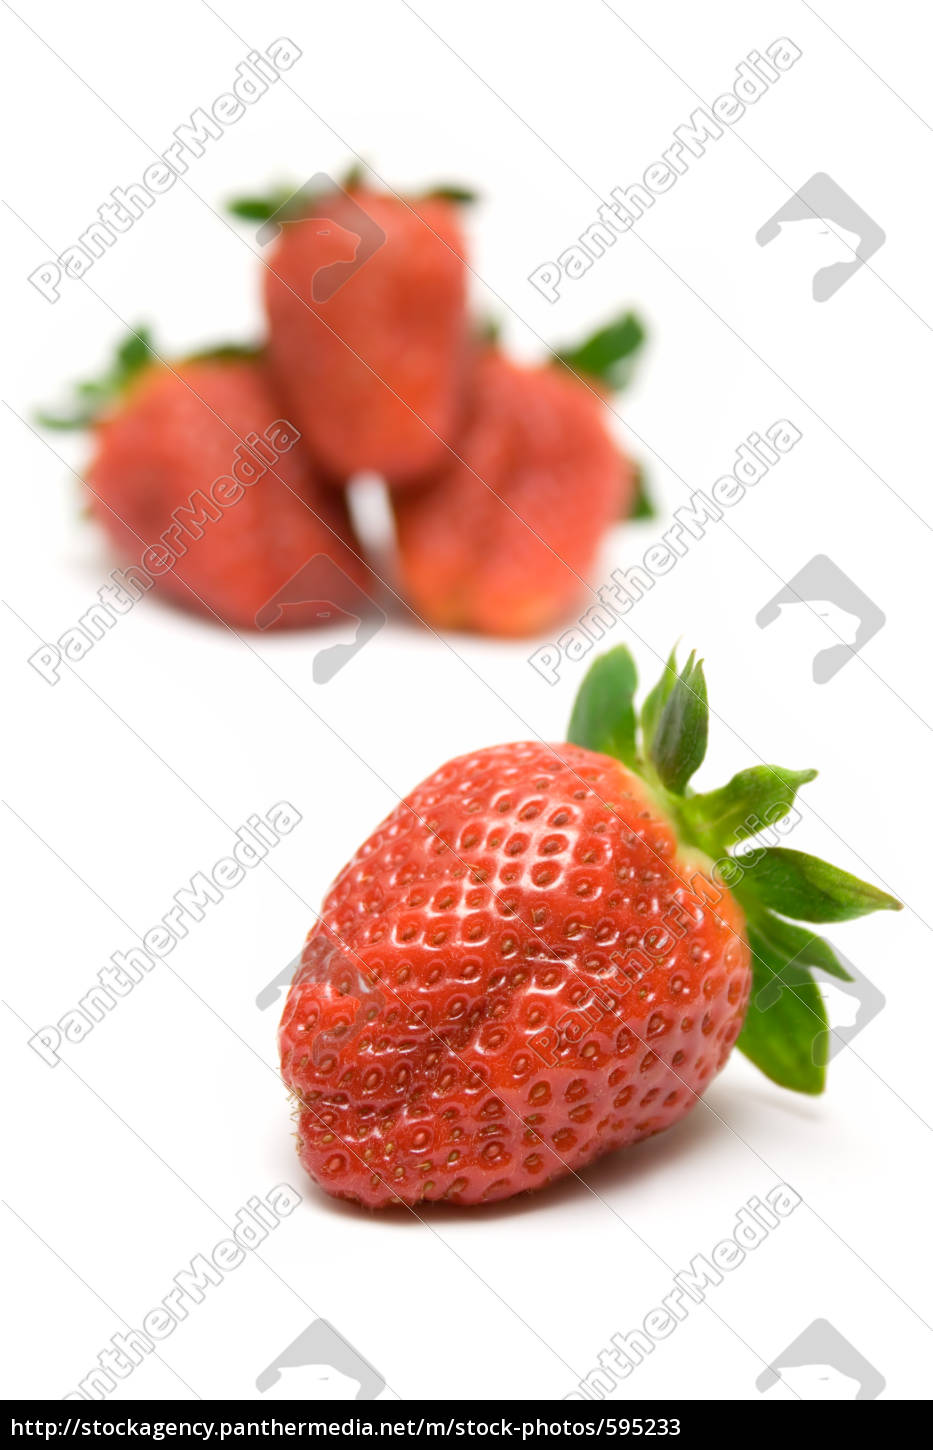 strawberries - 595233